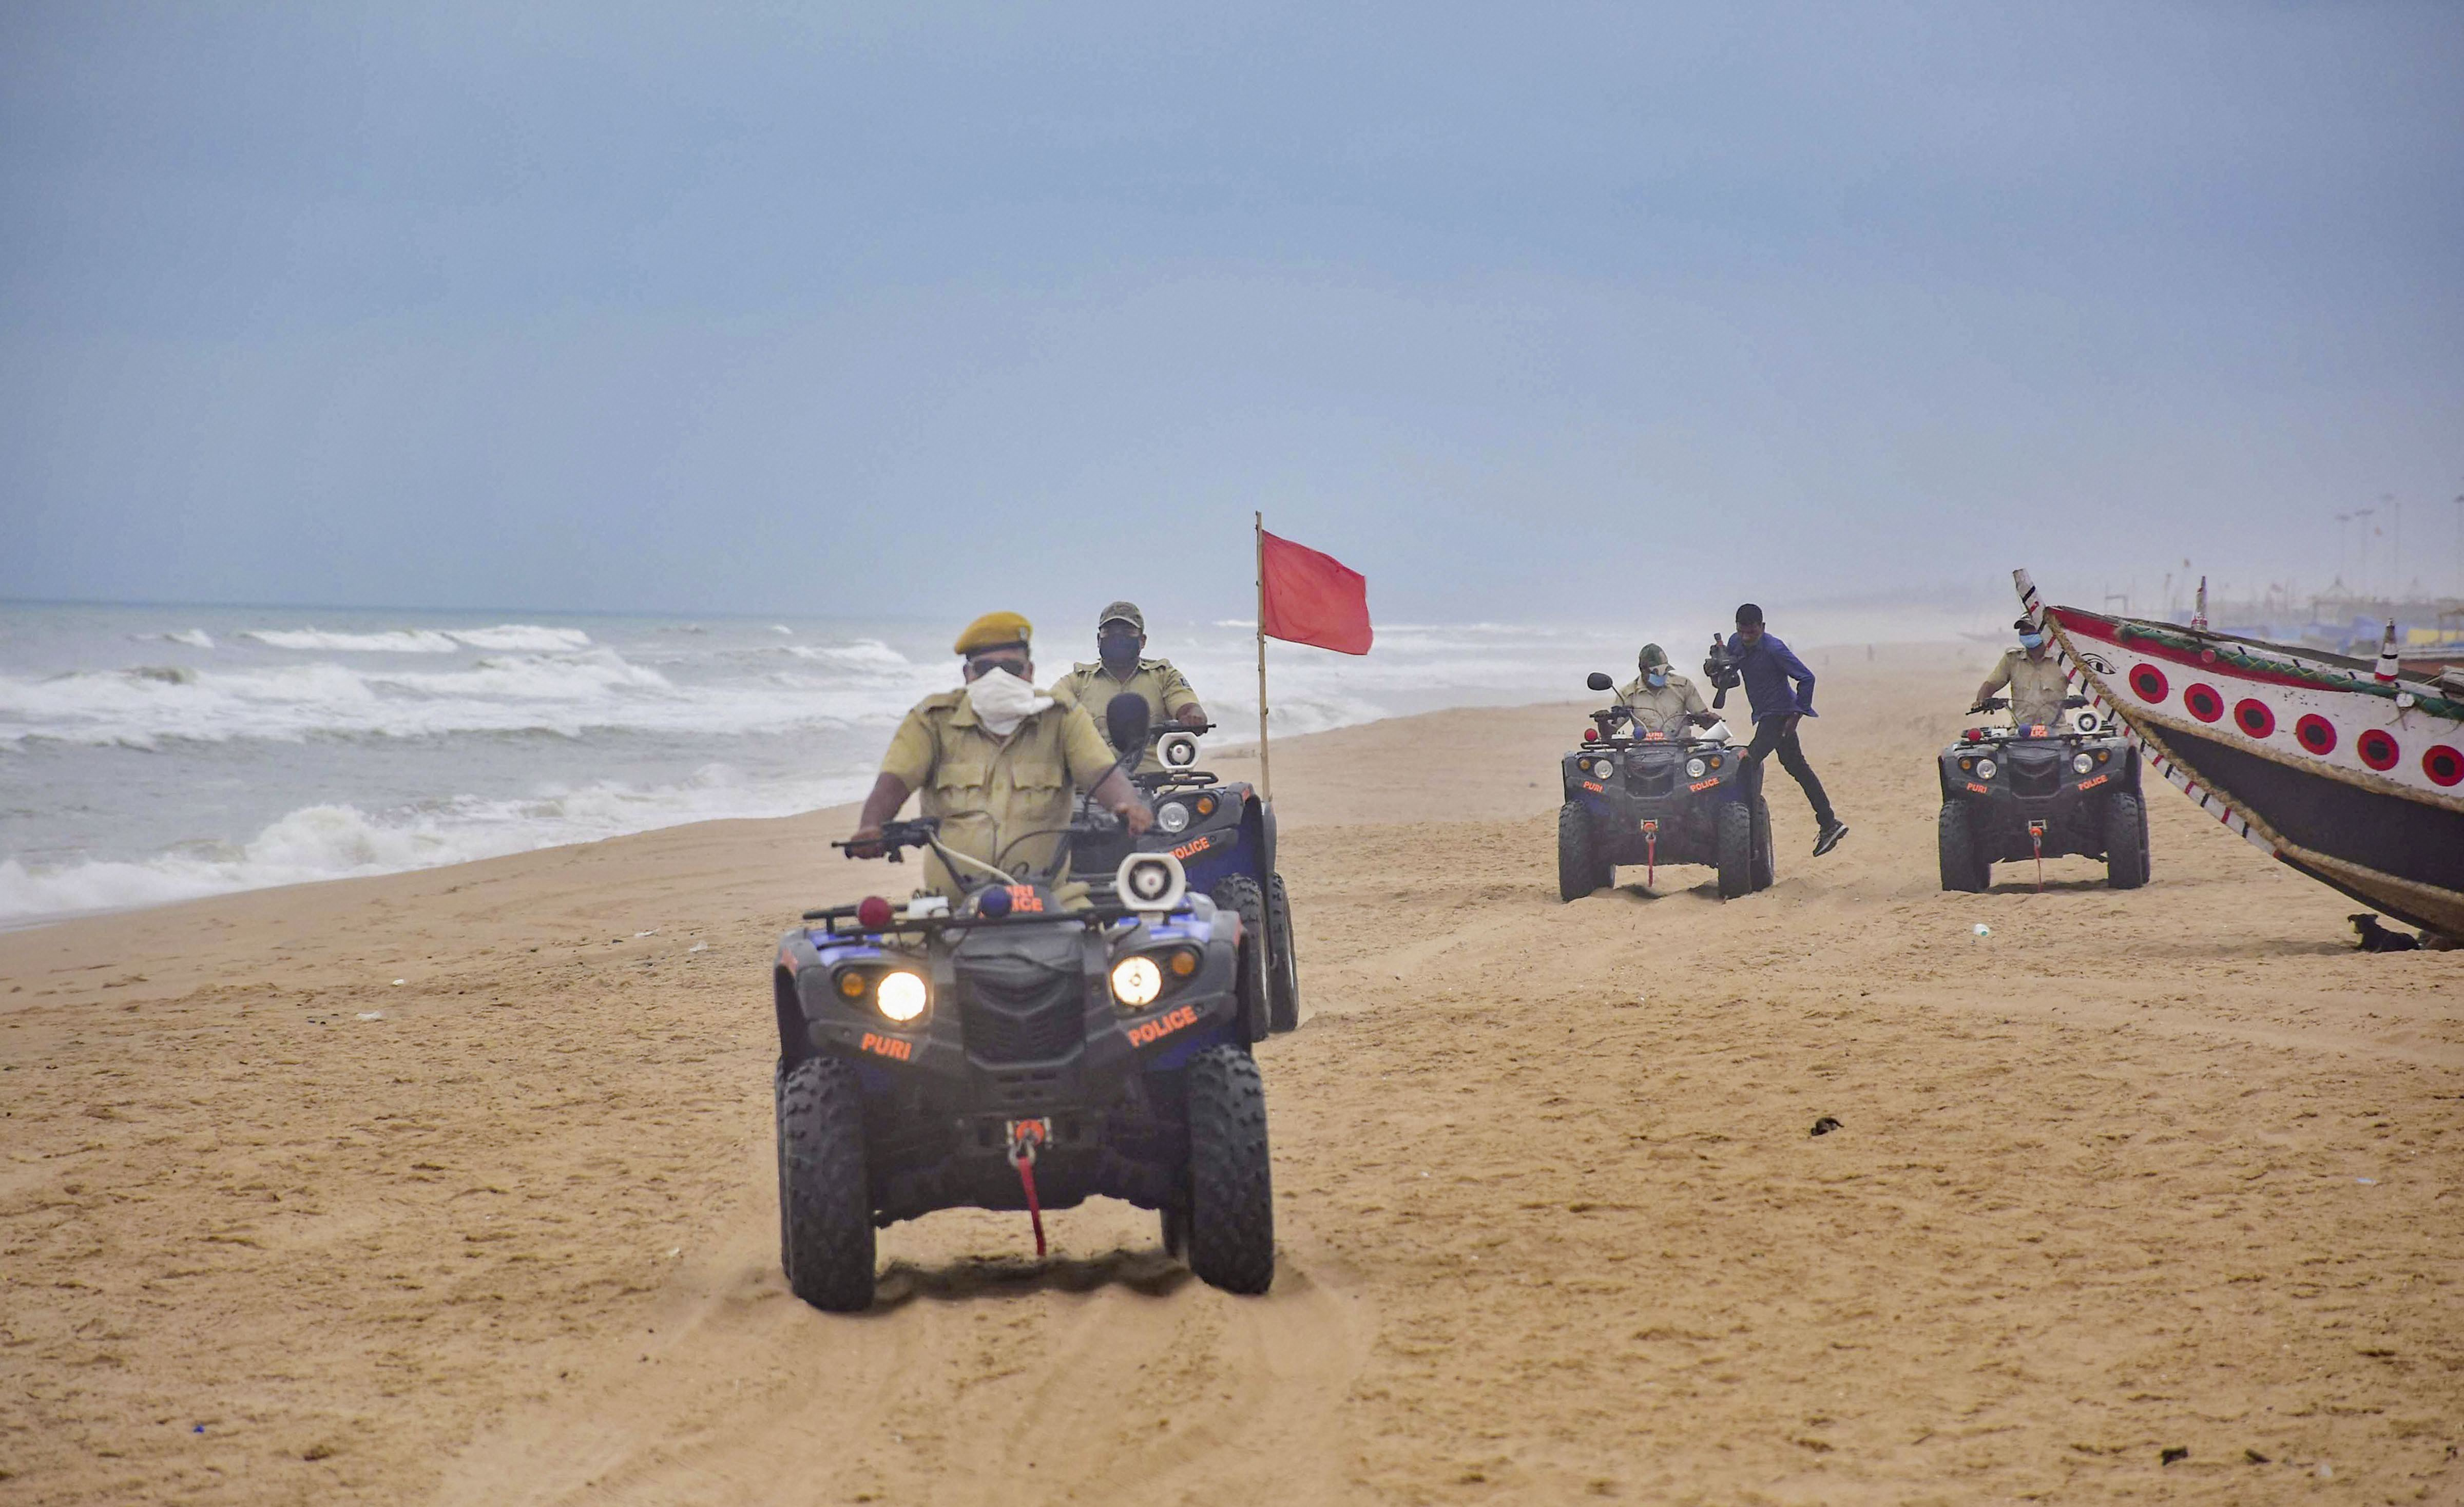 Marine police personnel patrol Puri beach to prevent tourists and fishermen from venturing into the sea due to Cyclone Amphan, in Puri, Sunday, May 17, 2020. Cyclone Amphan, is developing into a severe cyclonic storm in the Bay of Bengal and can become a very severe cyclonic storm potentially in the